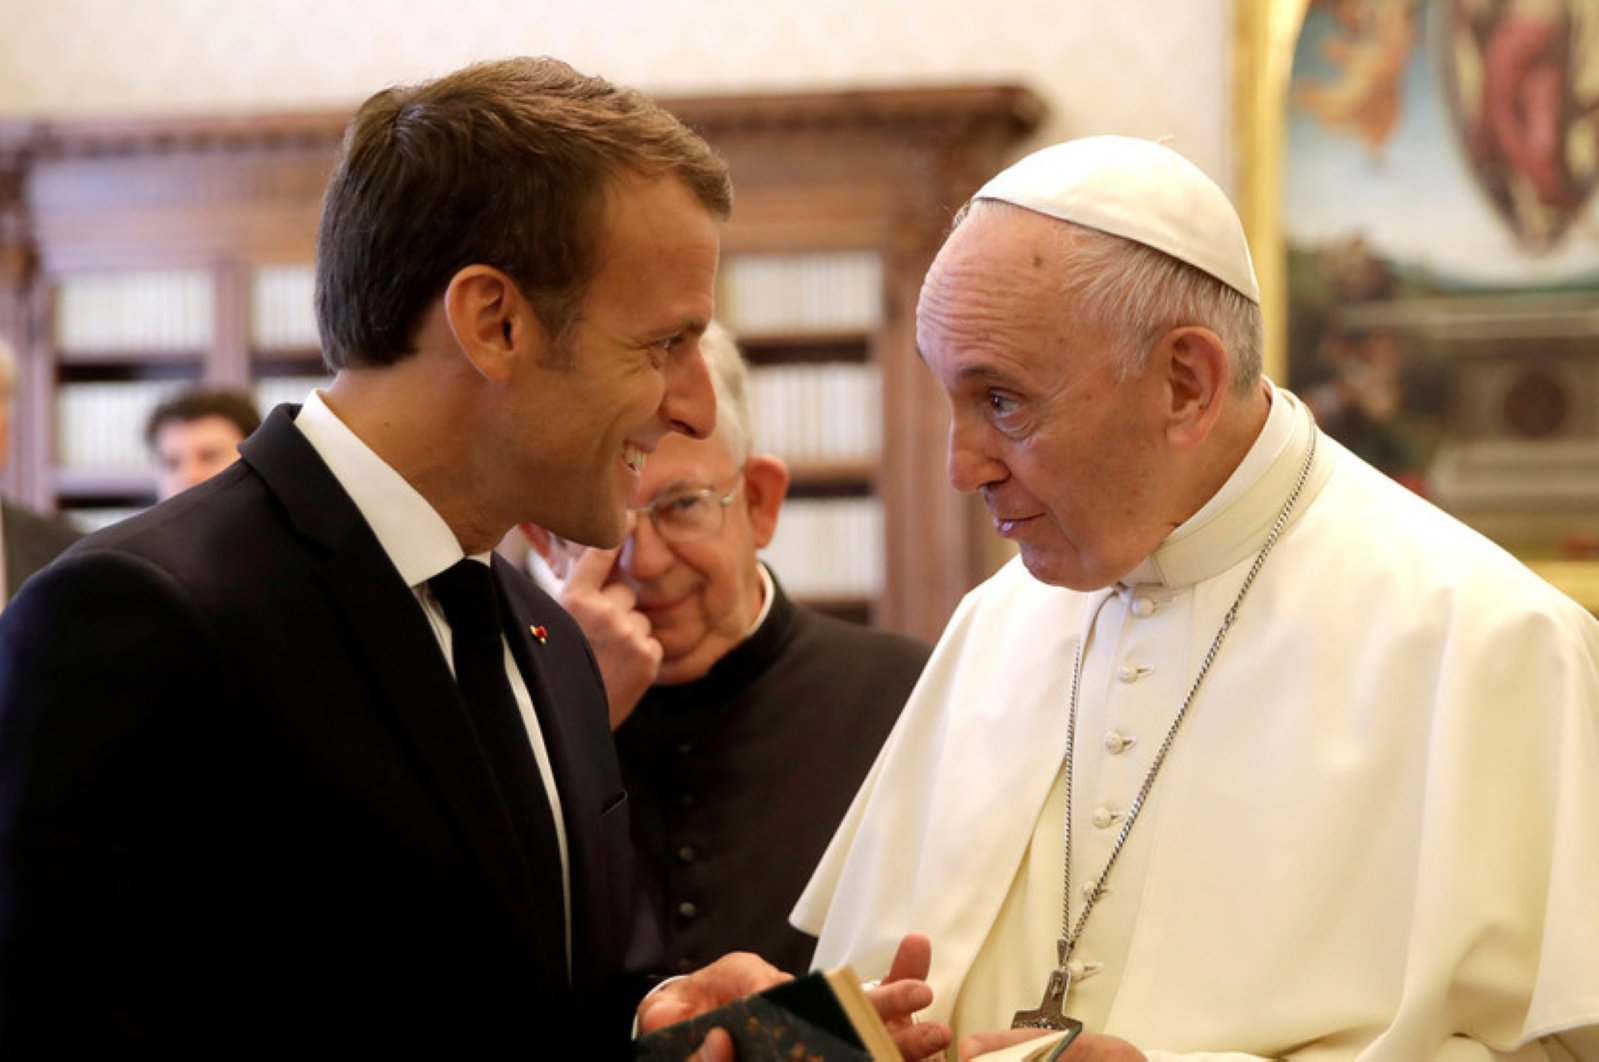 Pope Francis exchanges gifts with French President Emmanuel Macron during private audience, Vatican, June 26, 2018. (REUTERS Photo)